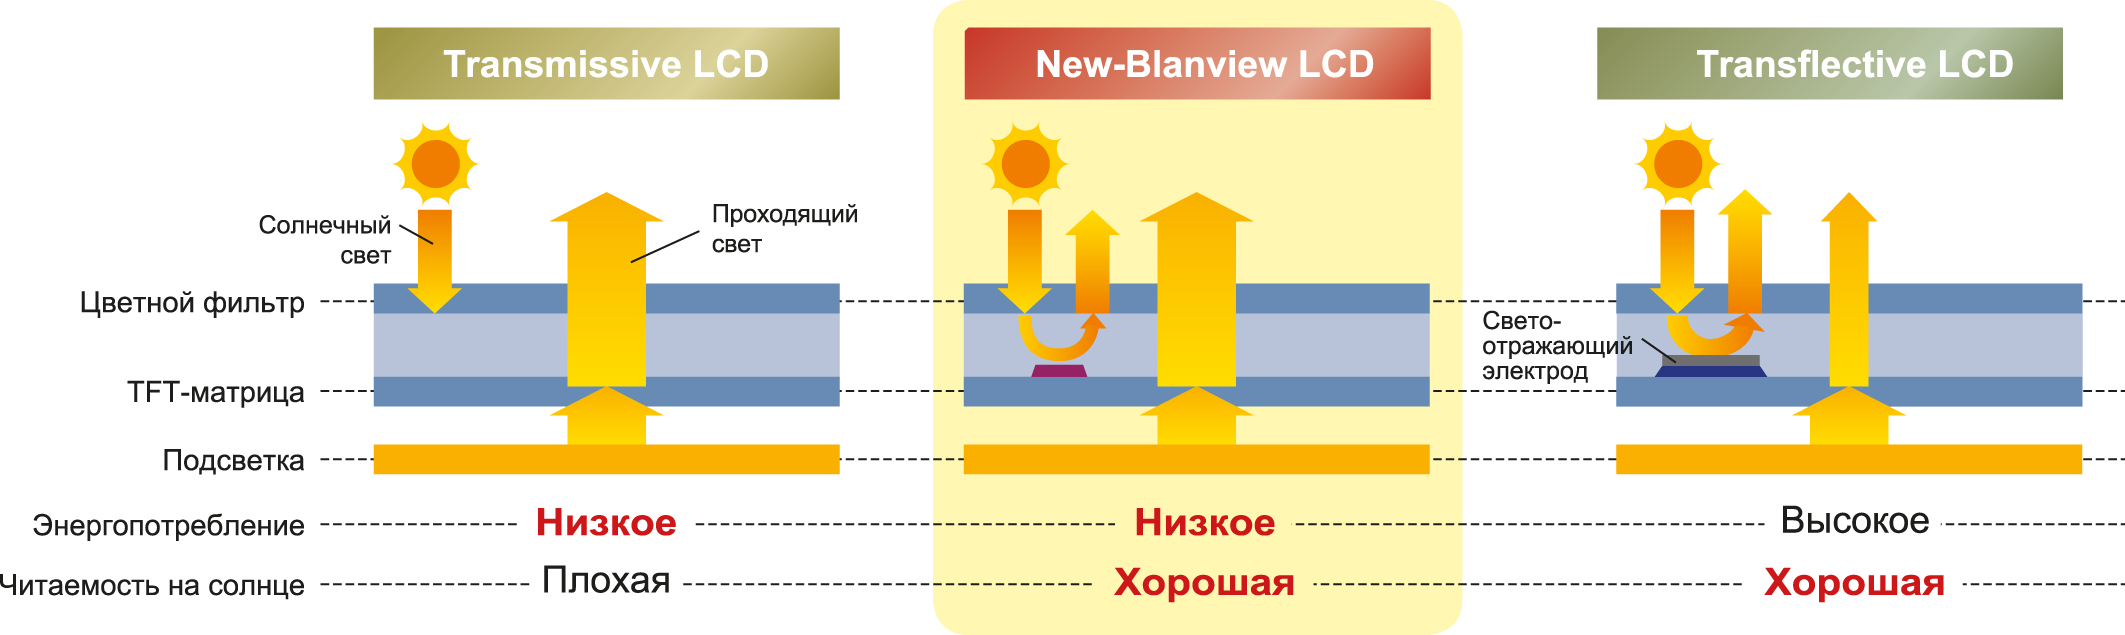 New-Blanview LCD